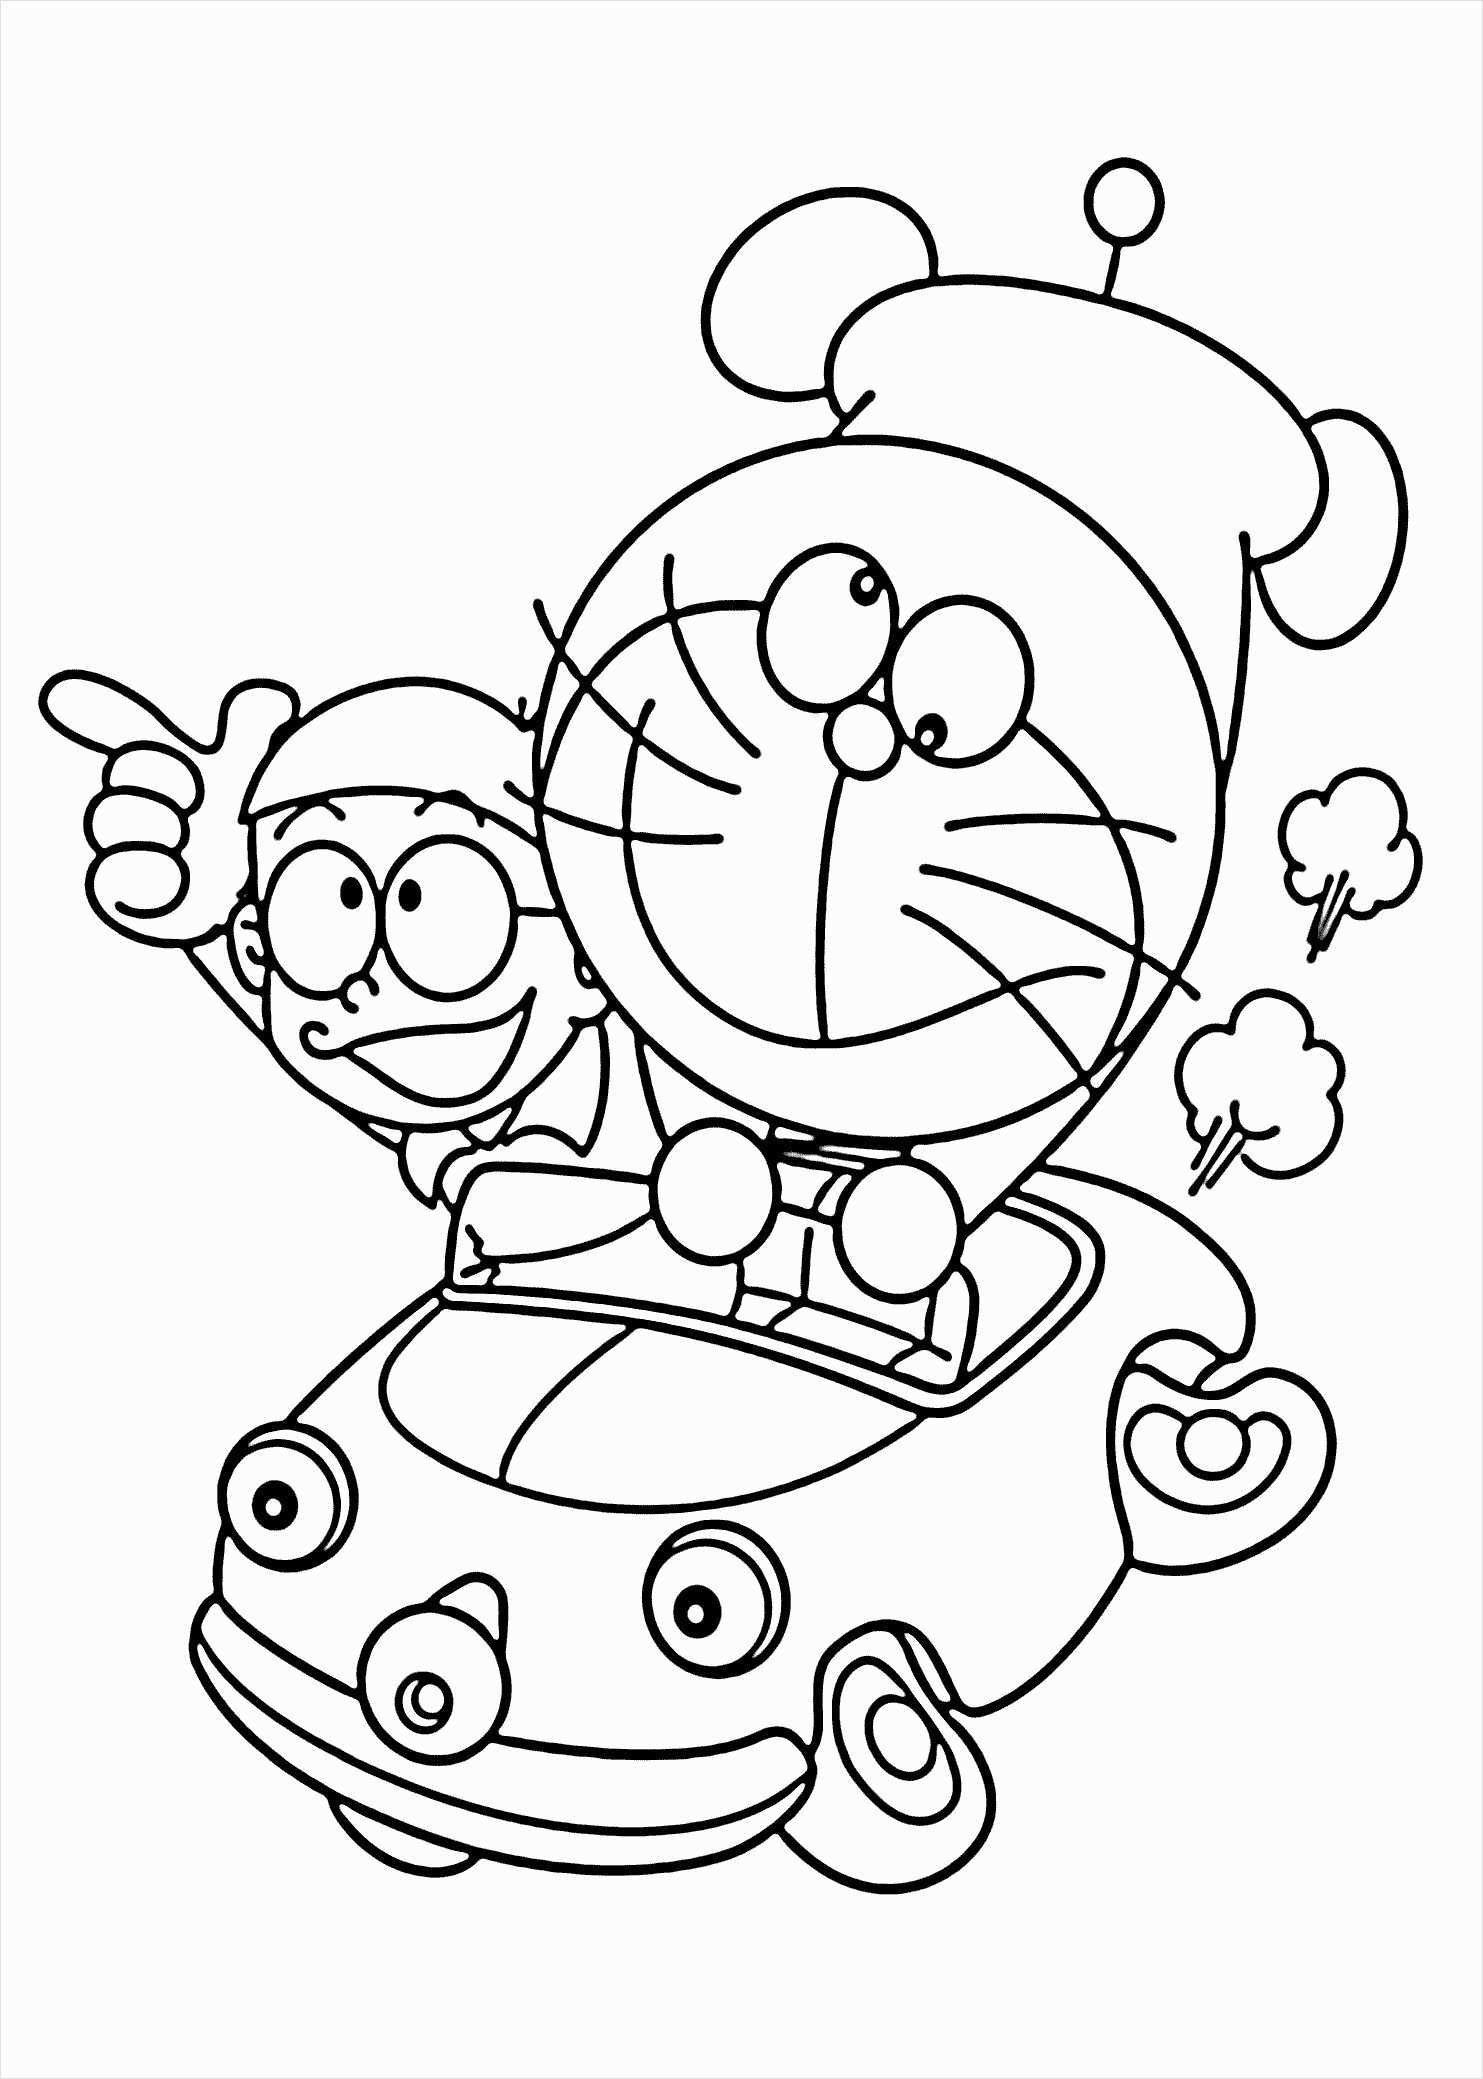 Printable Coloring Pages For Teens Beautiful Printable Coloring Pages For Boys Lovely Free P Valentine Coloring Pages Turkey Coloring Pages Cool Coloring Pages